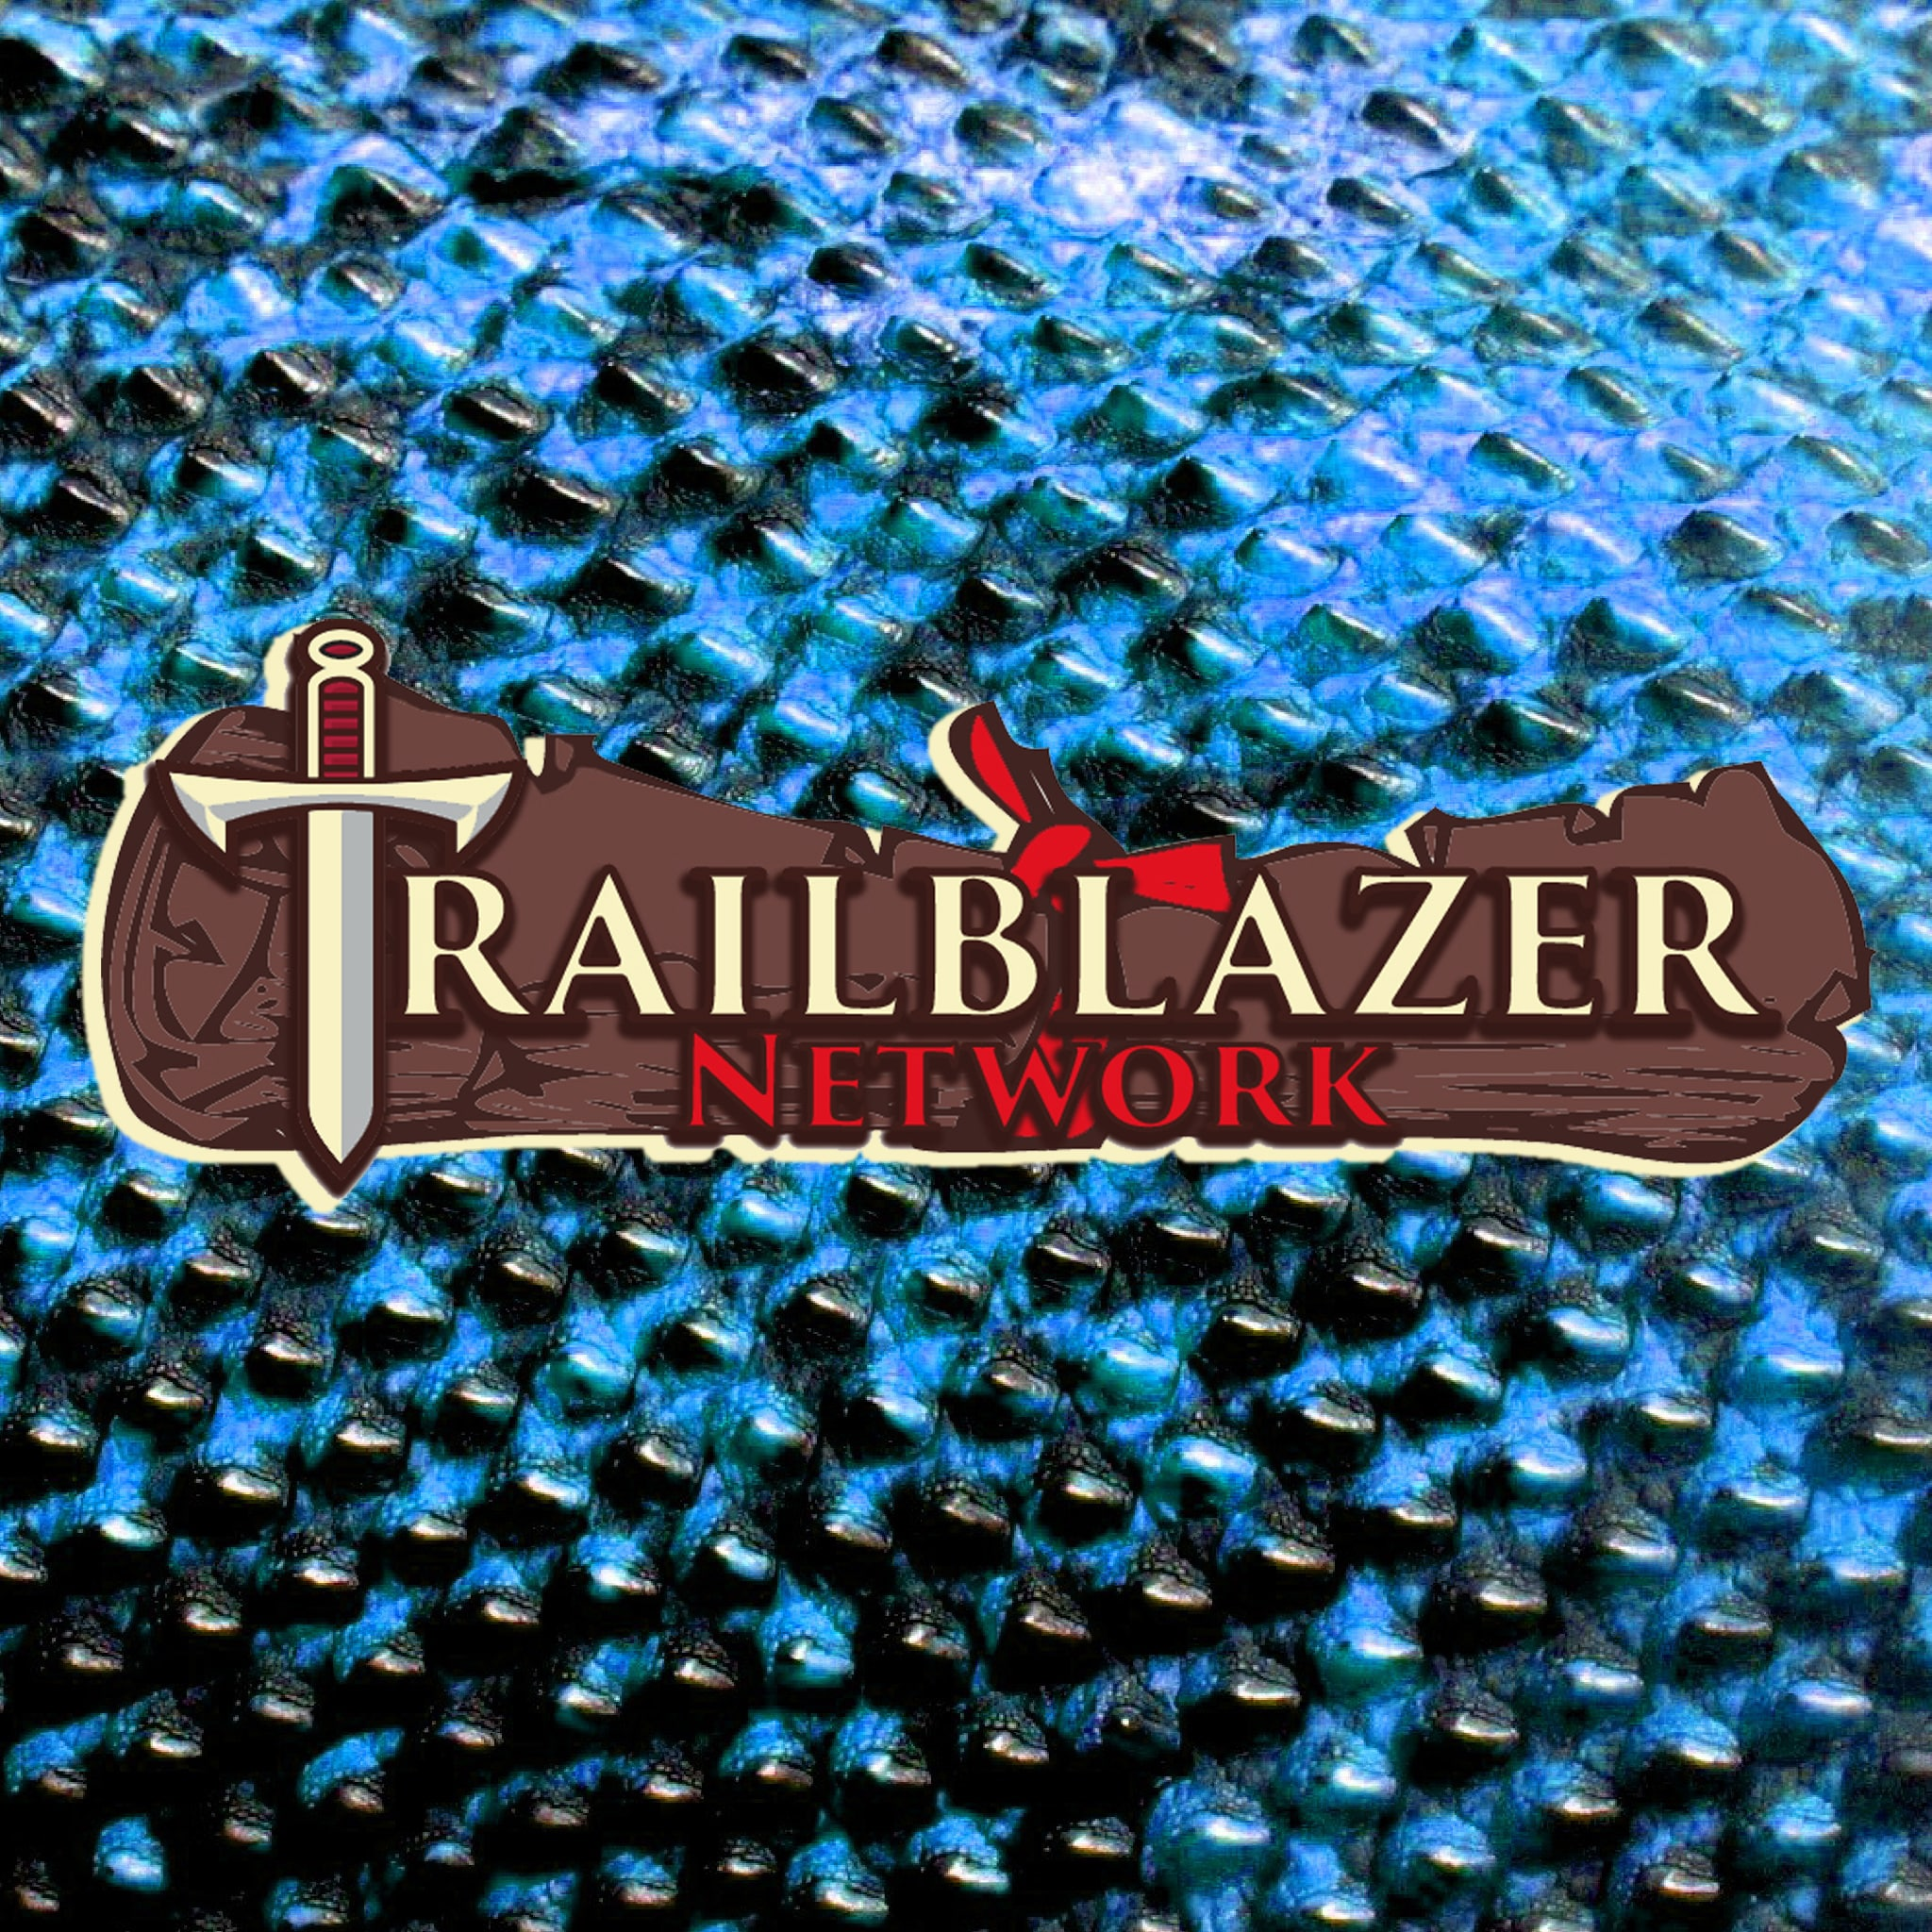 Trailblazer Network logo